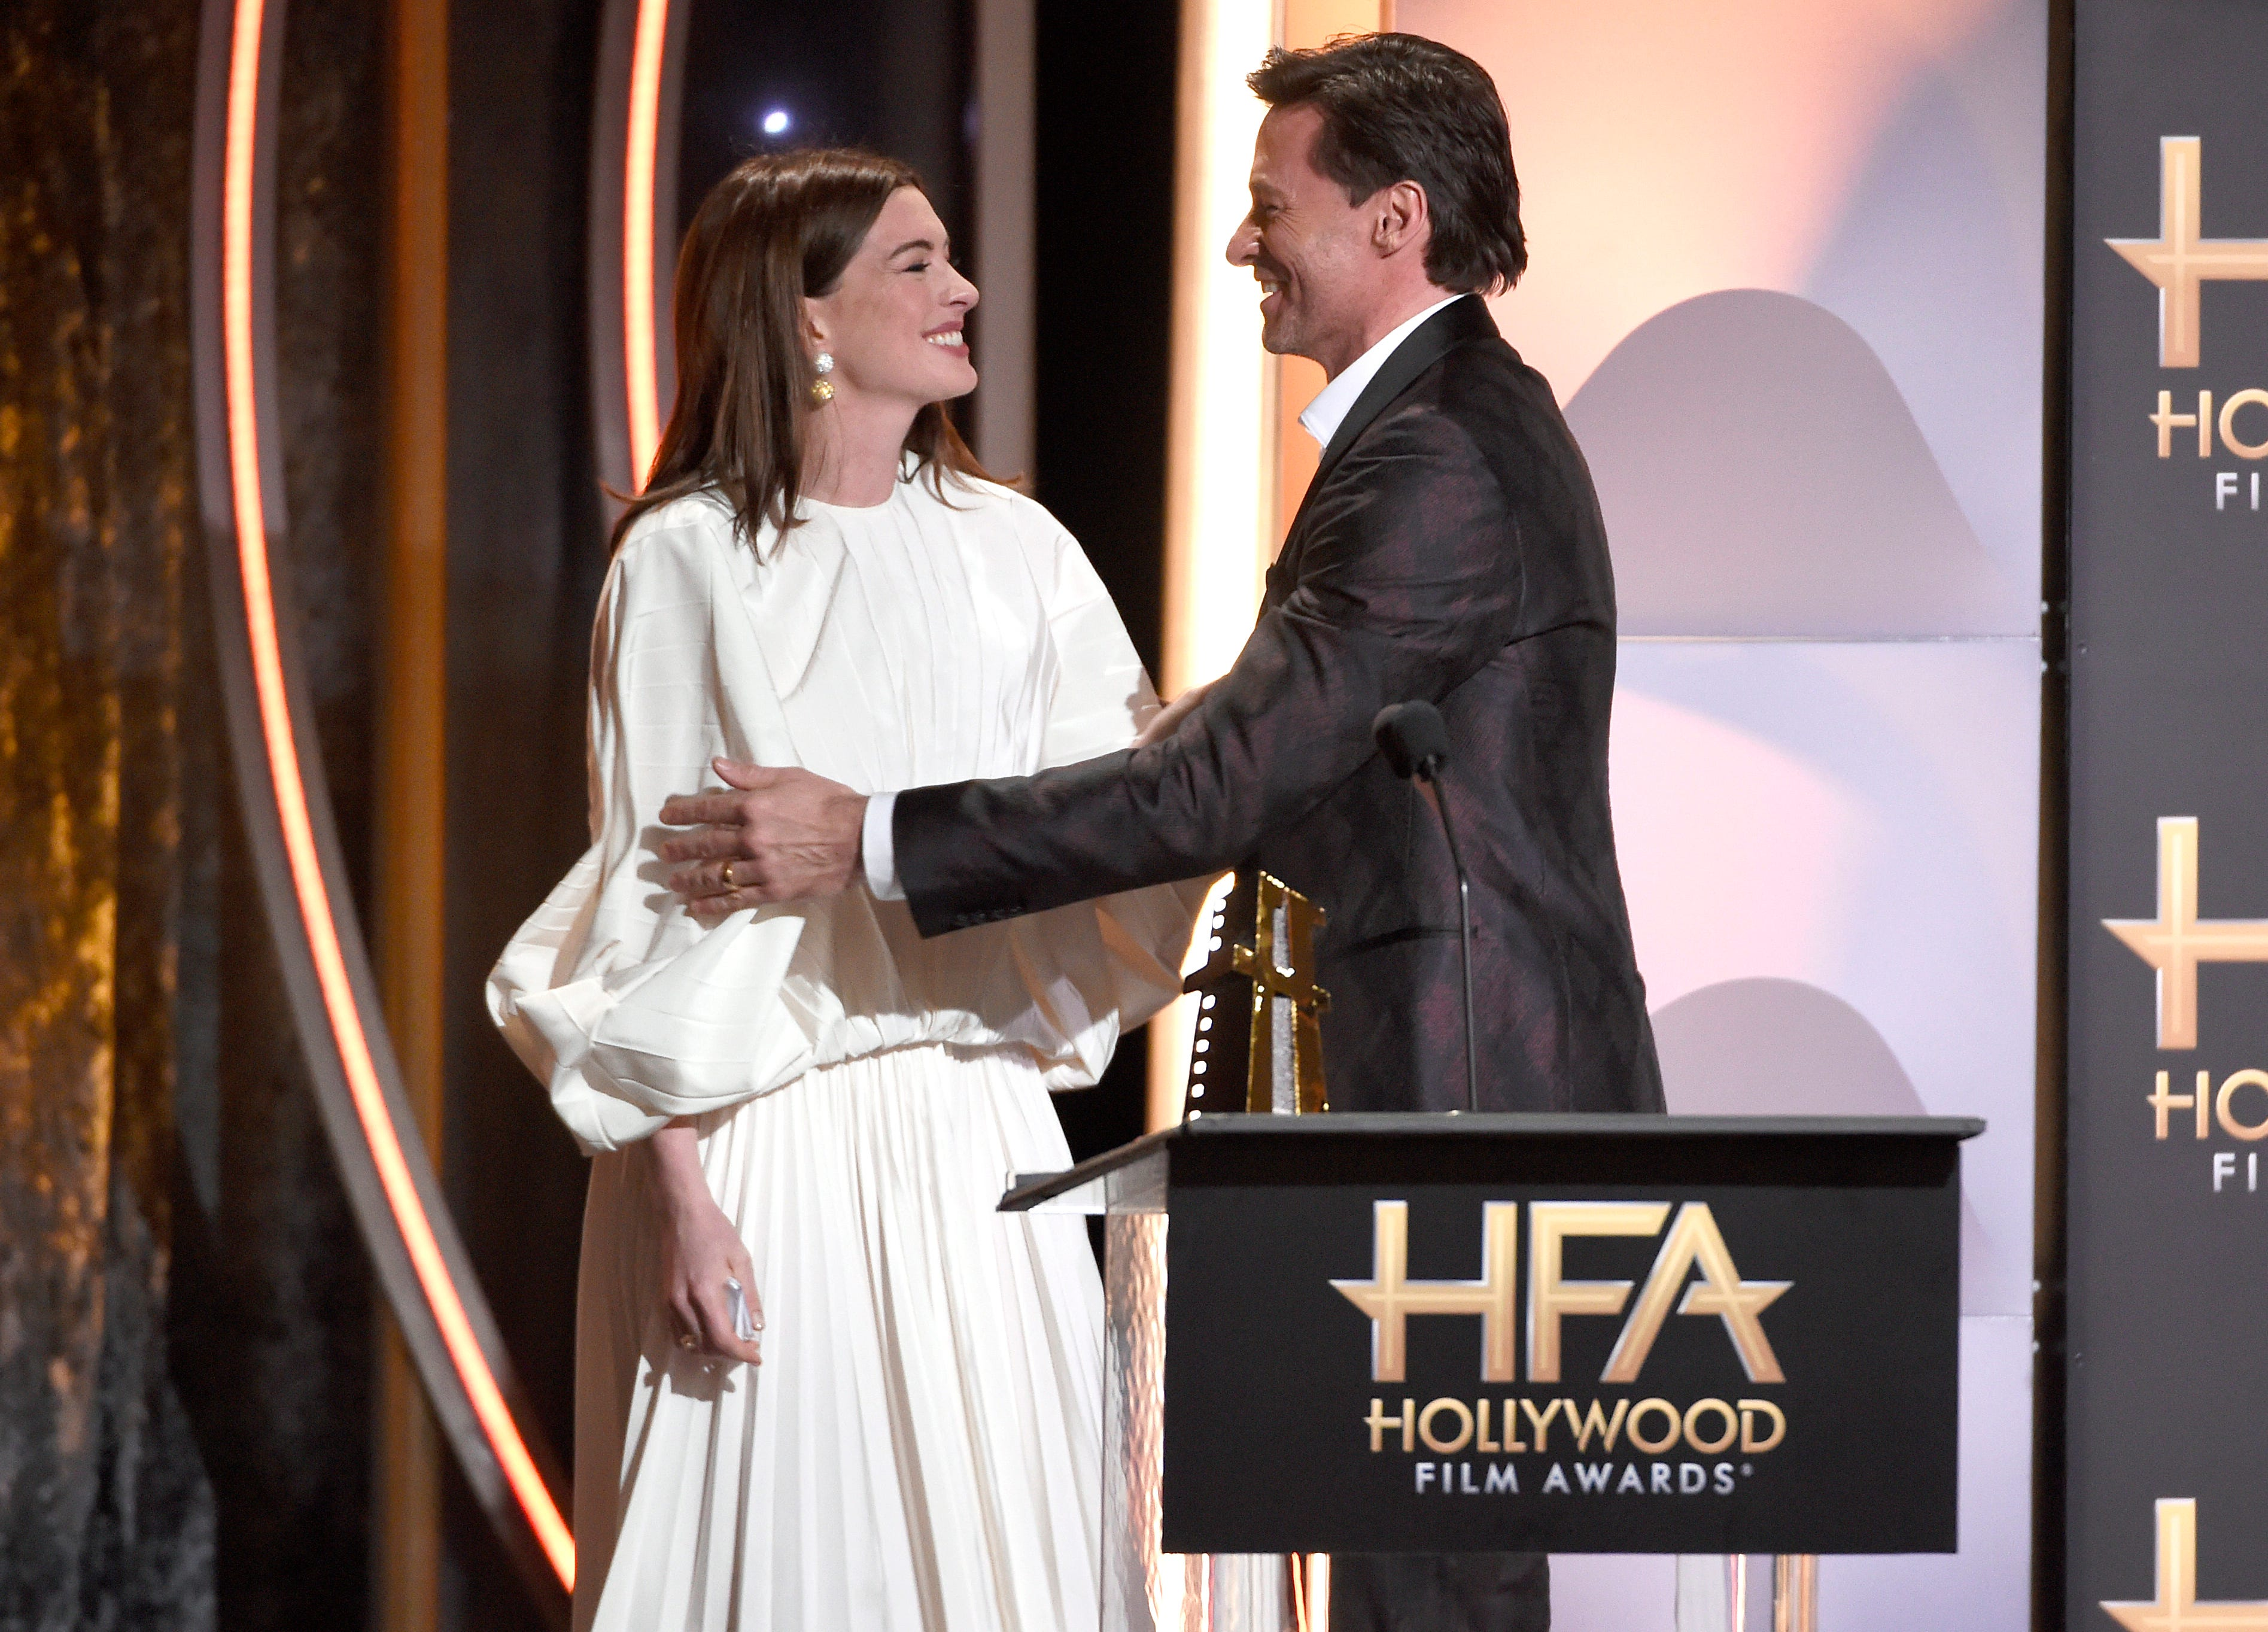 Anne Hathaway finally reveals how Hugh Jackman lost it shooting 'Les Miserables'